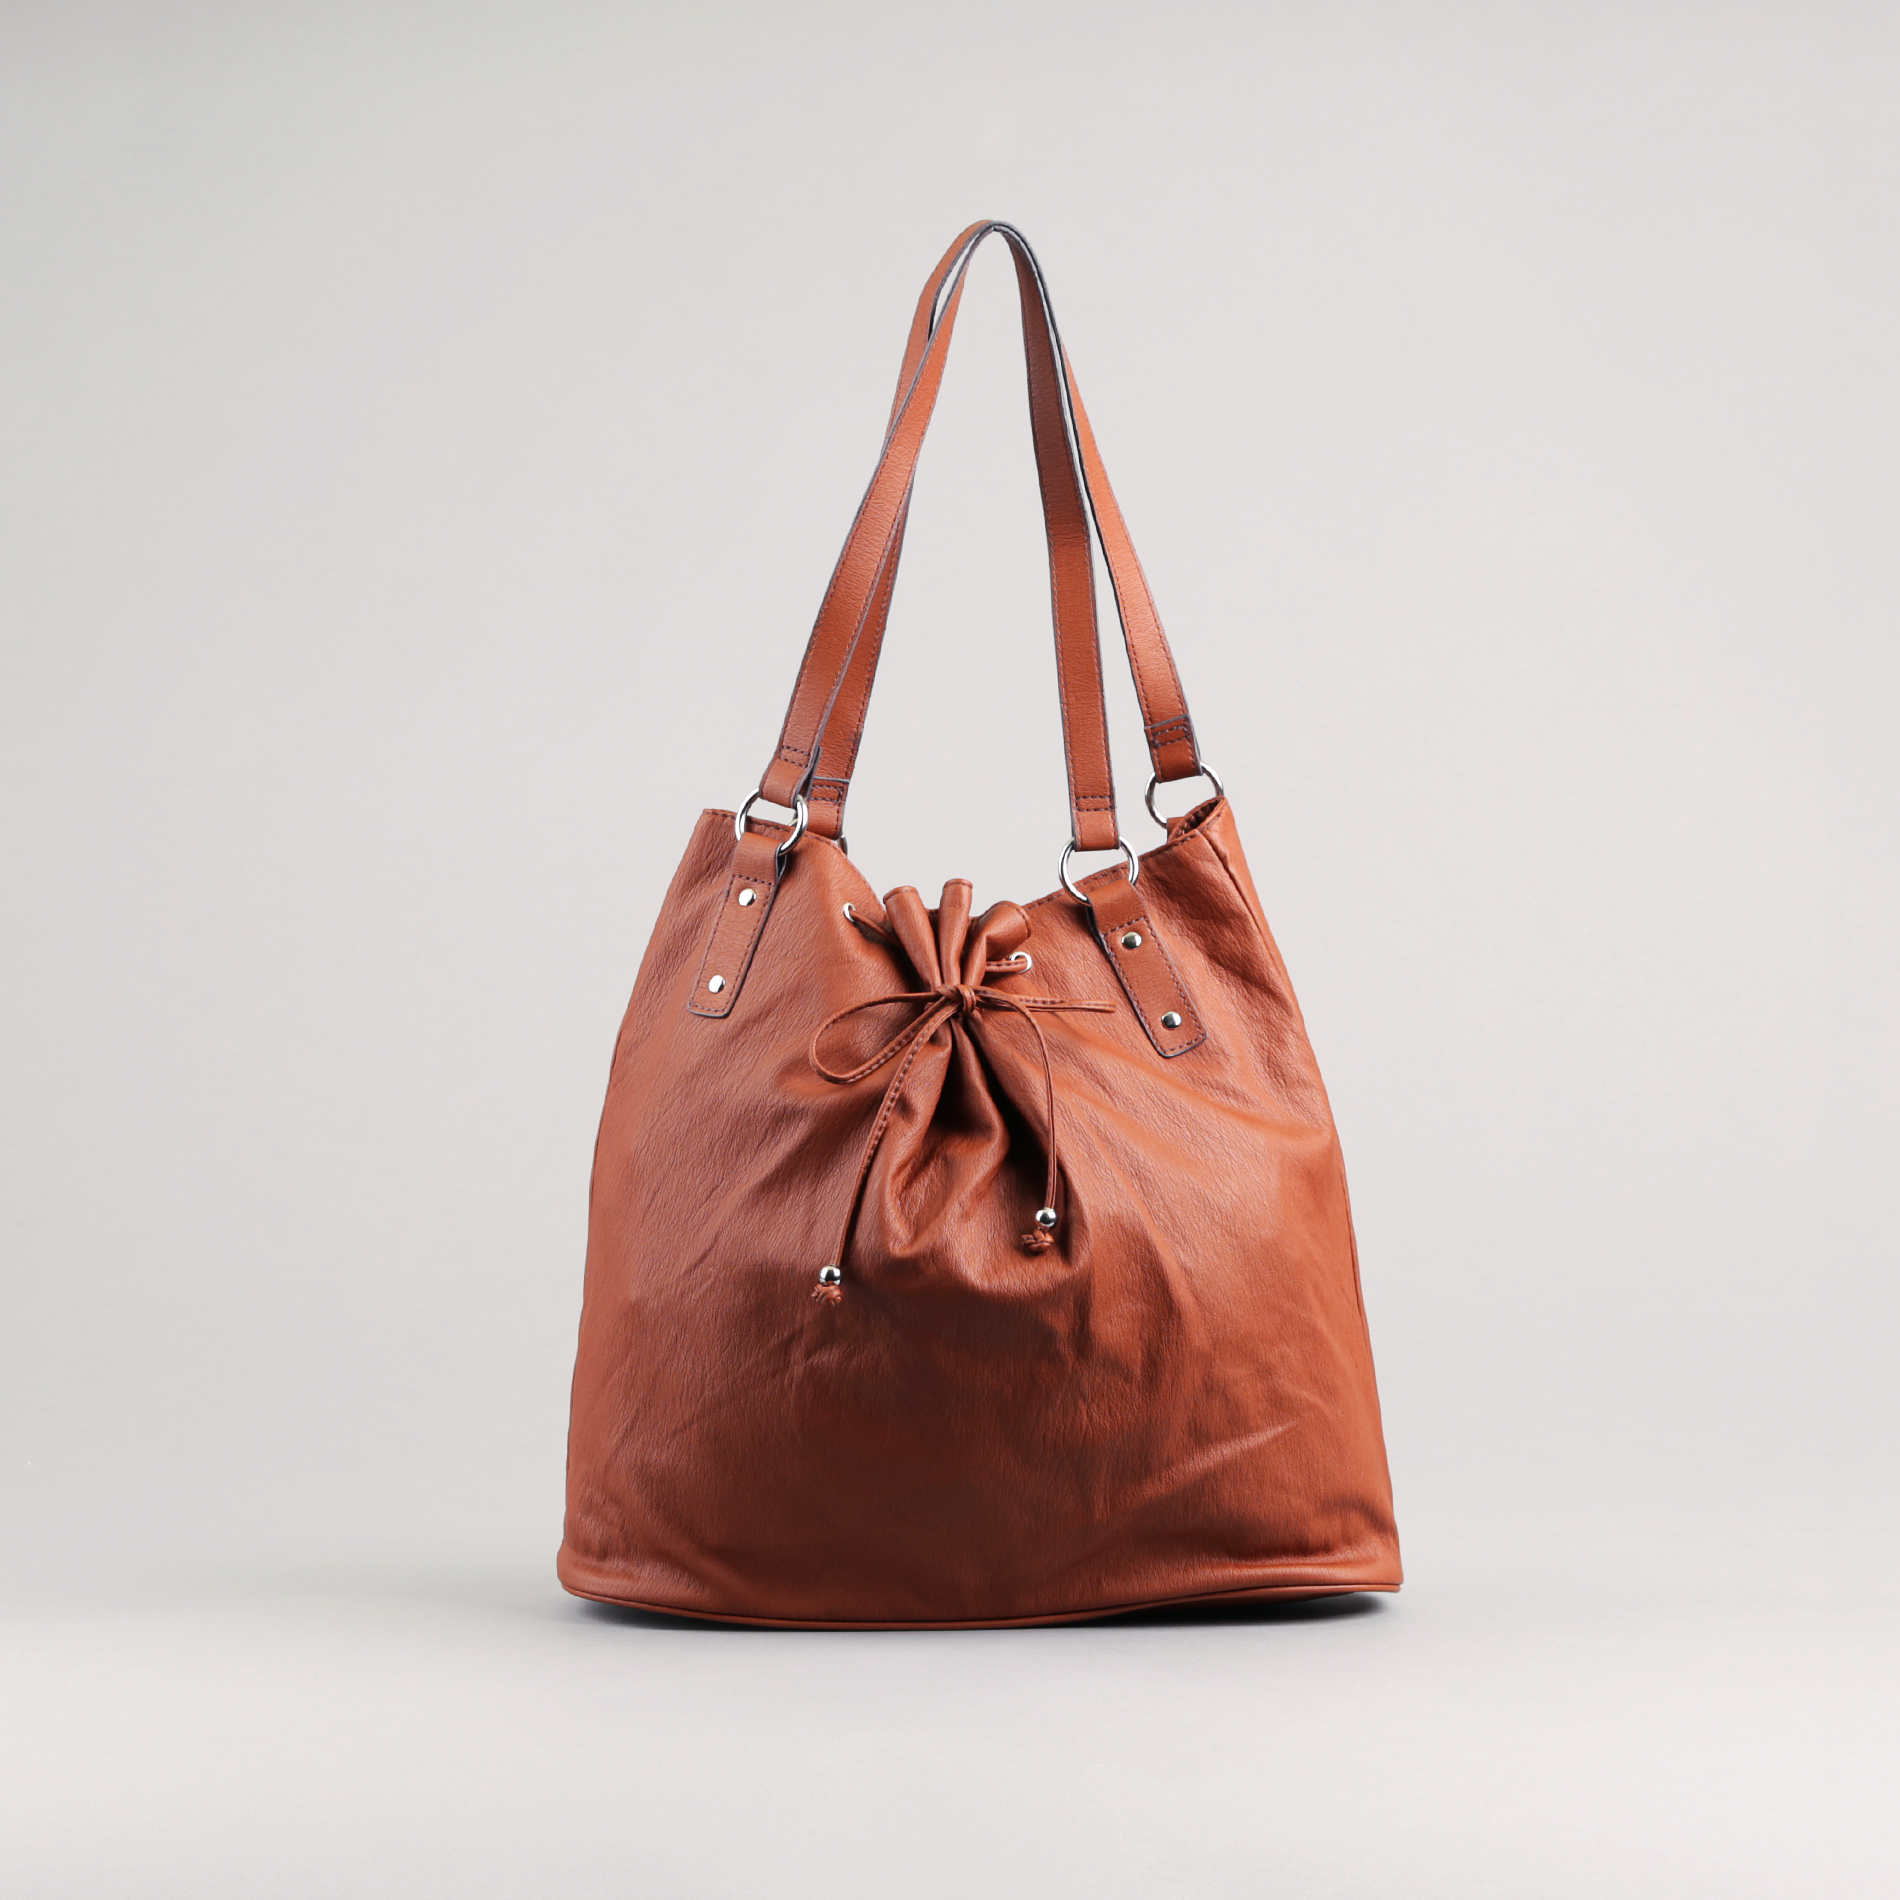 Women's 'Promises' Tote Handbag